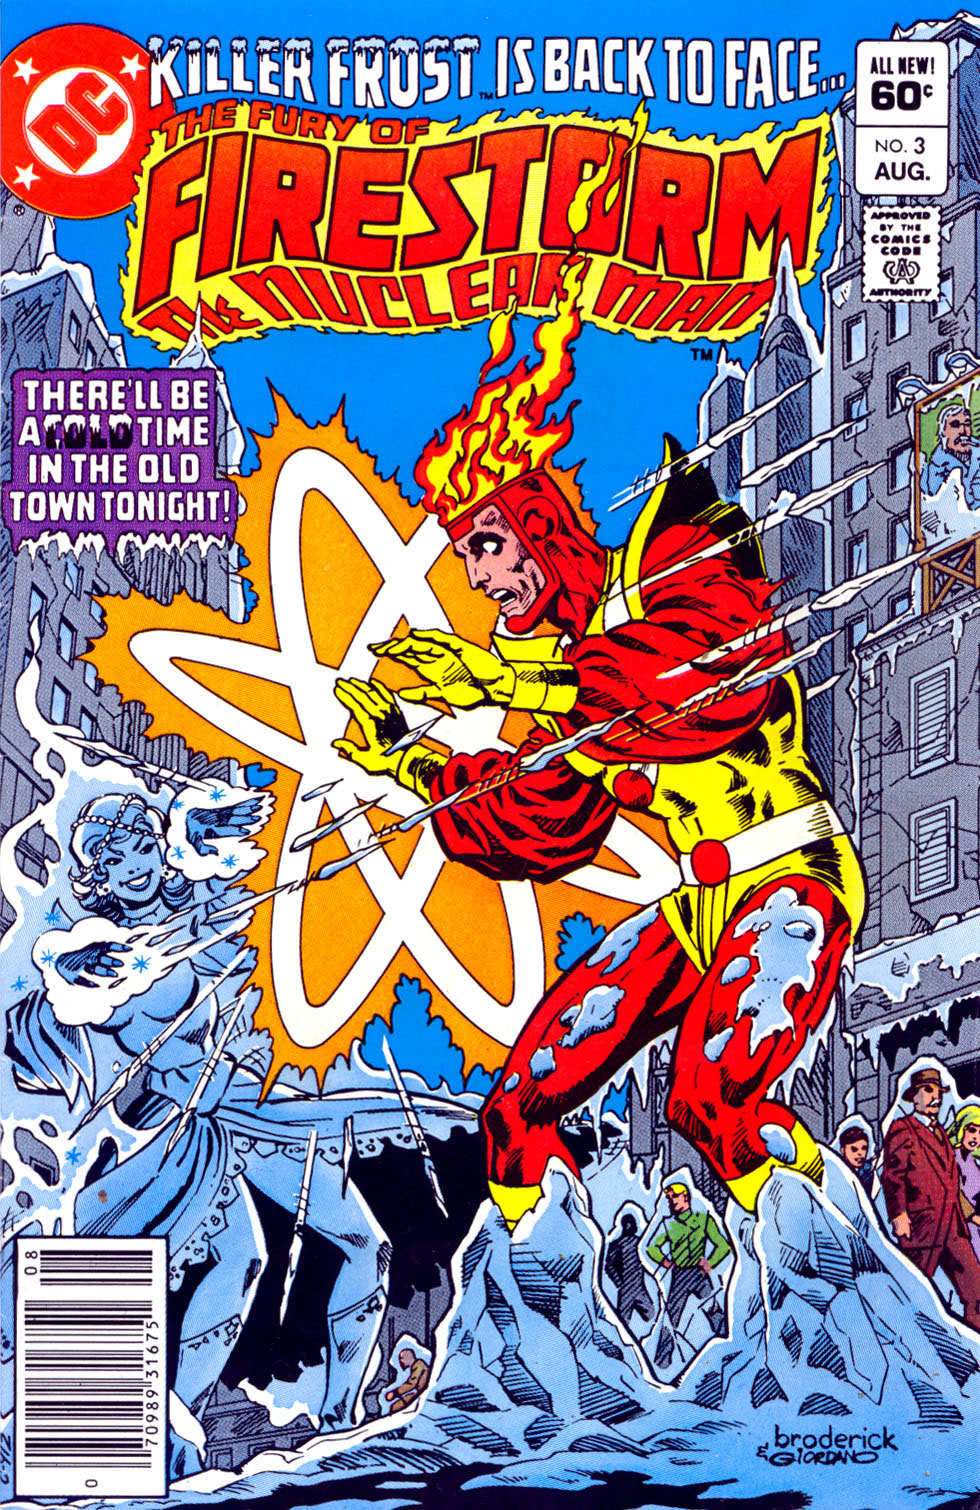 Fury of Firestorm #3 cover by Pat Broderick and Dick Giordano